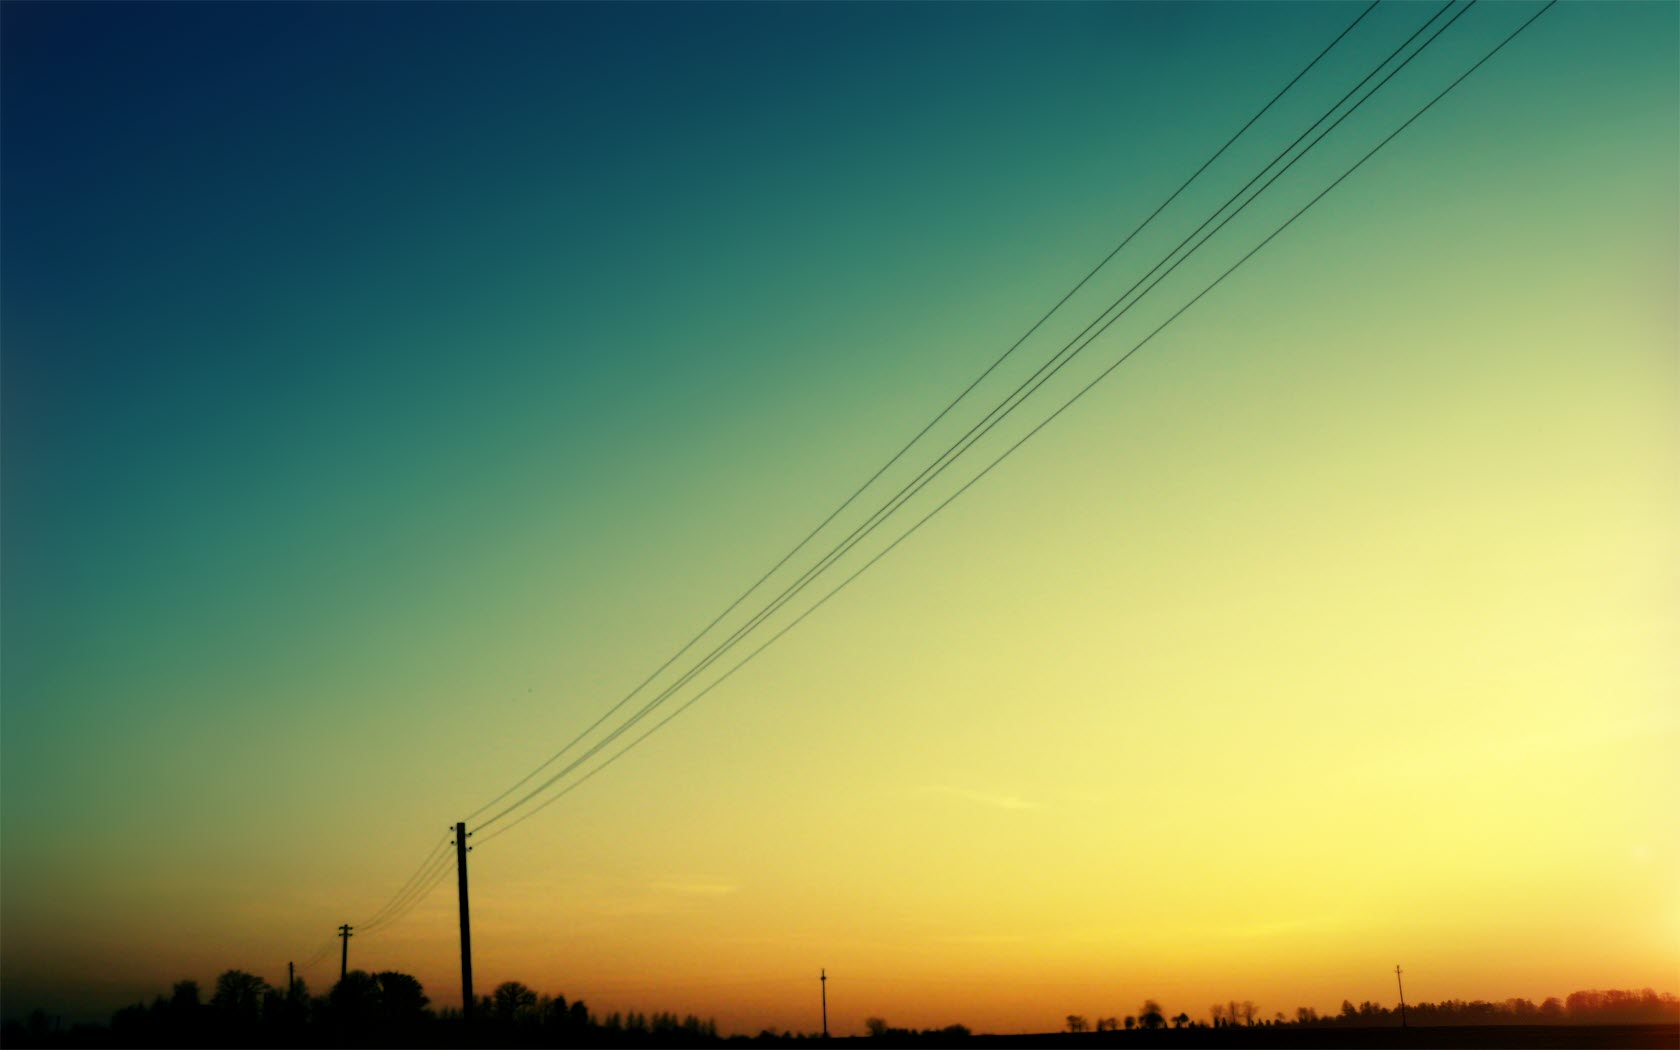 Grid Wallpaper Iphone X Power Line Wallpaper And Background Image 1680x1050 Id